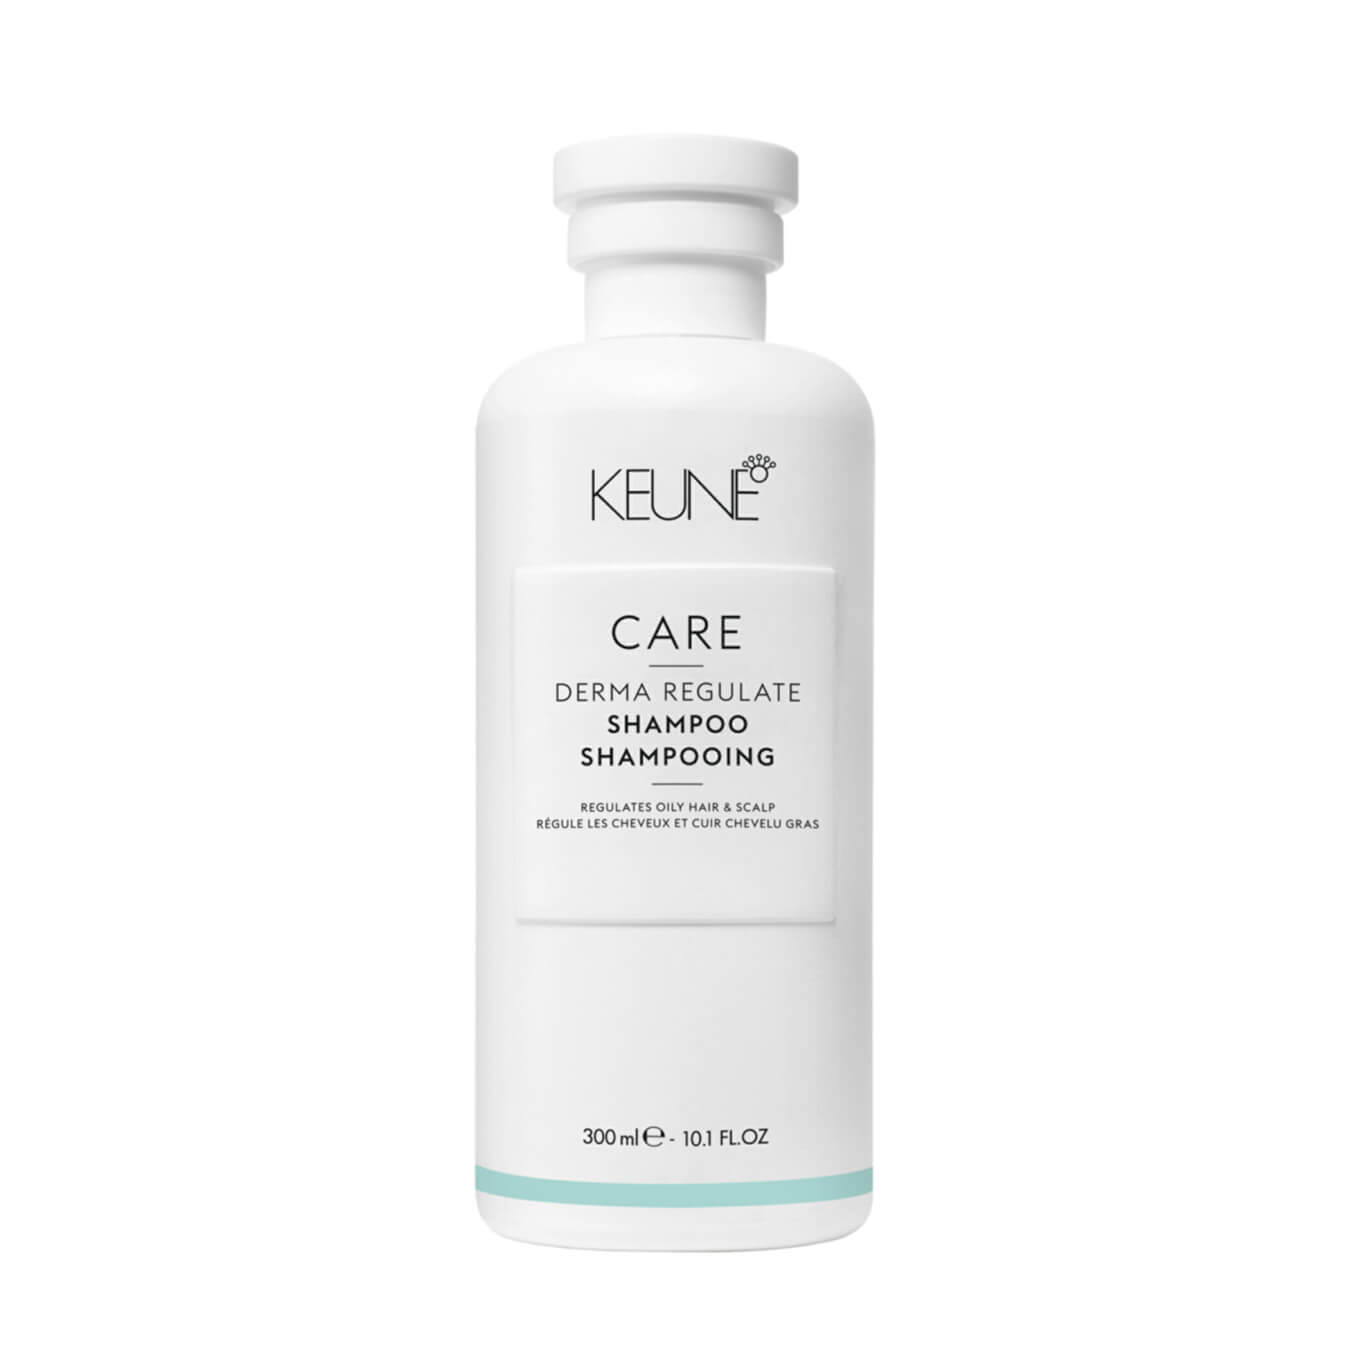 Koop Keune Care Derma Regulate Shampoo 300ml